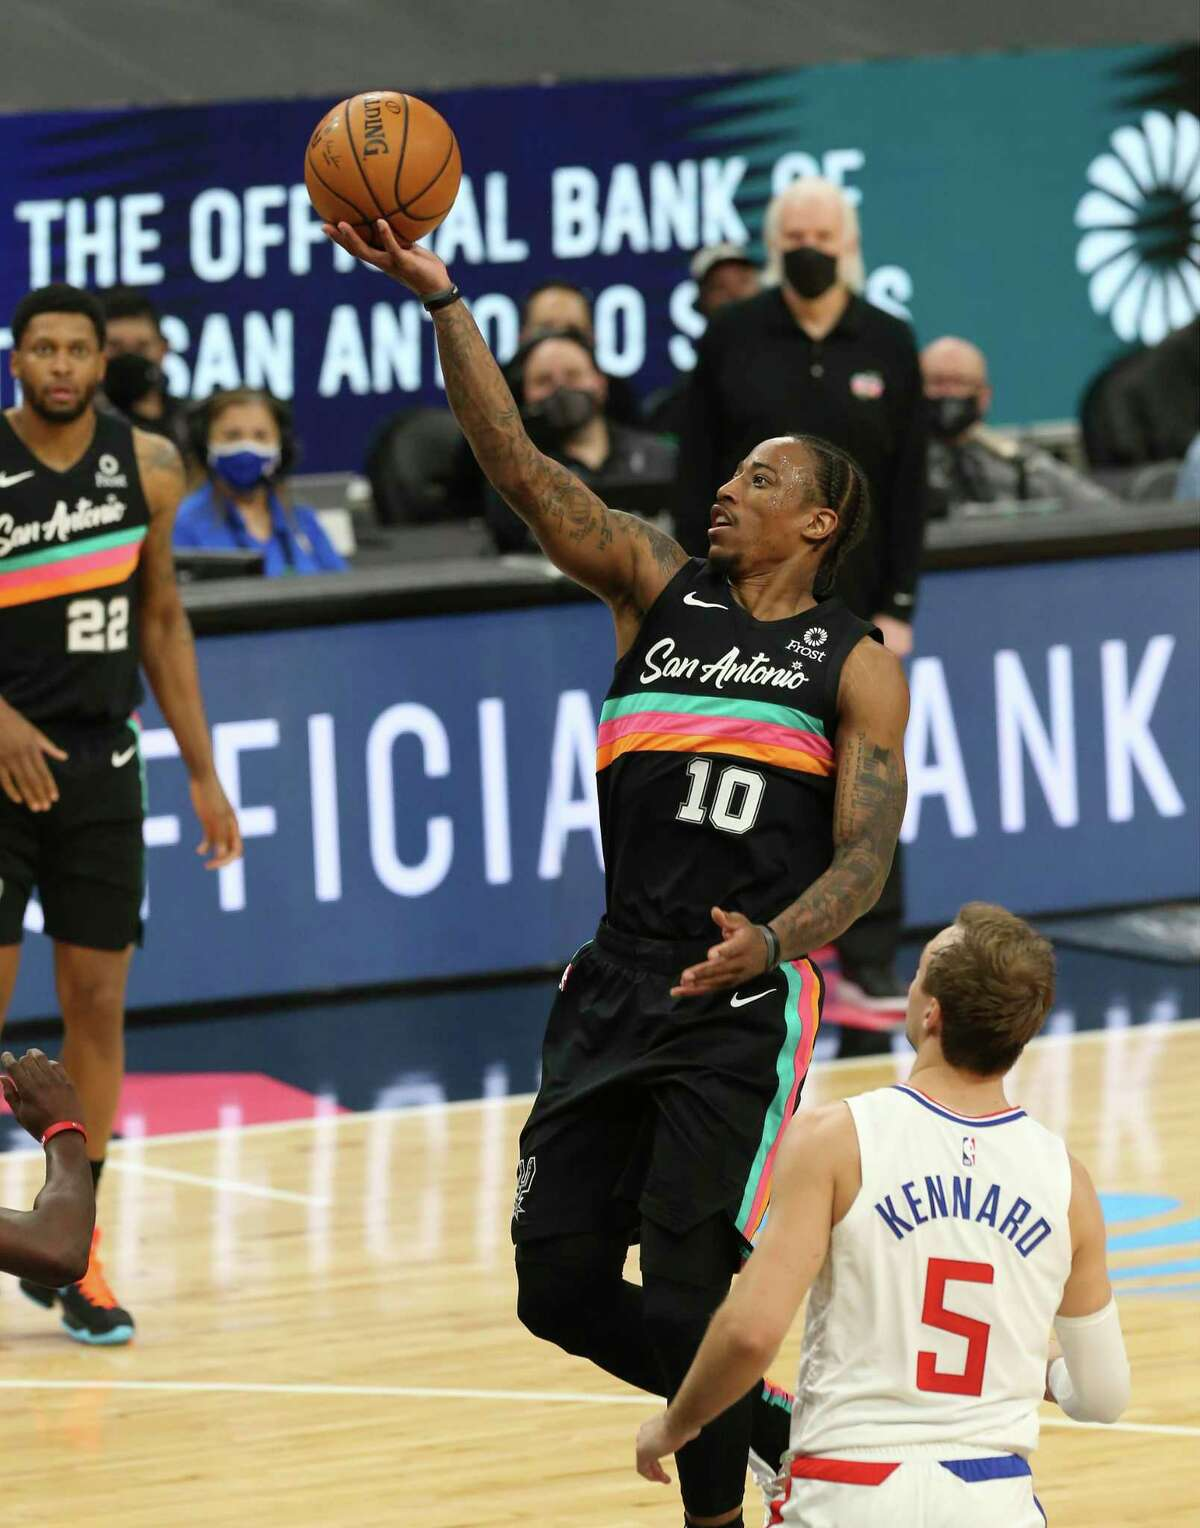 Spurs' DeMar DeRozan (10) scores the last shot of the first half against the Los Angeles Clippers' Luke Kennard (05) at the AT&T Center on Thursday, Mar. 25, 2021.